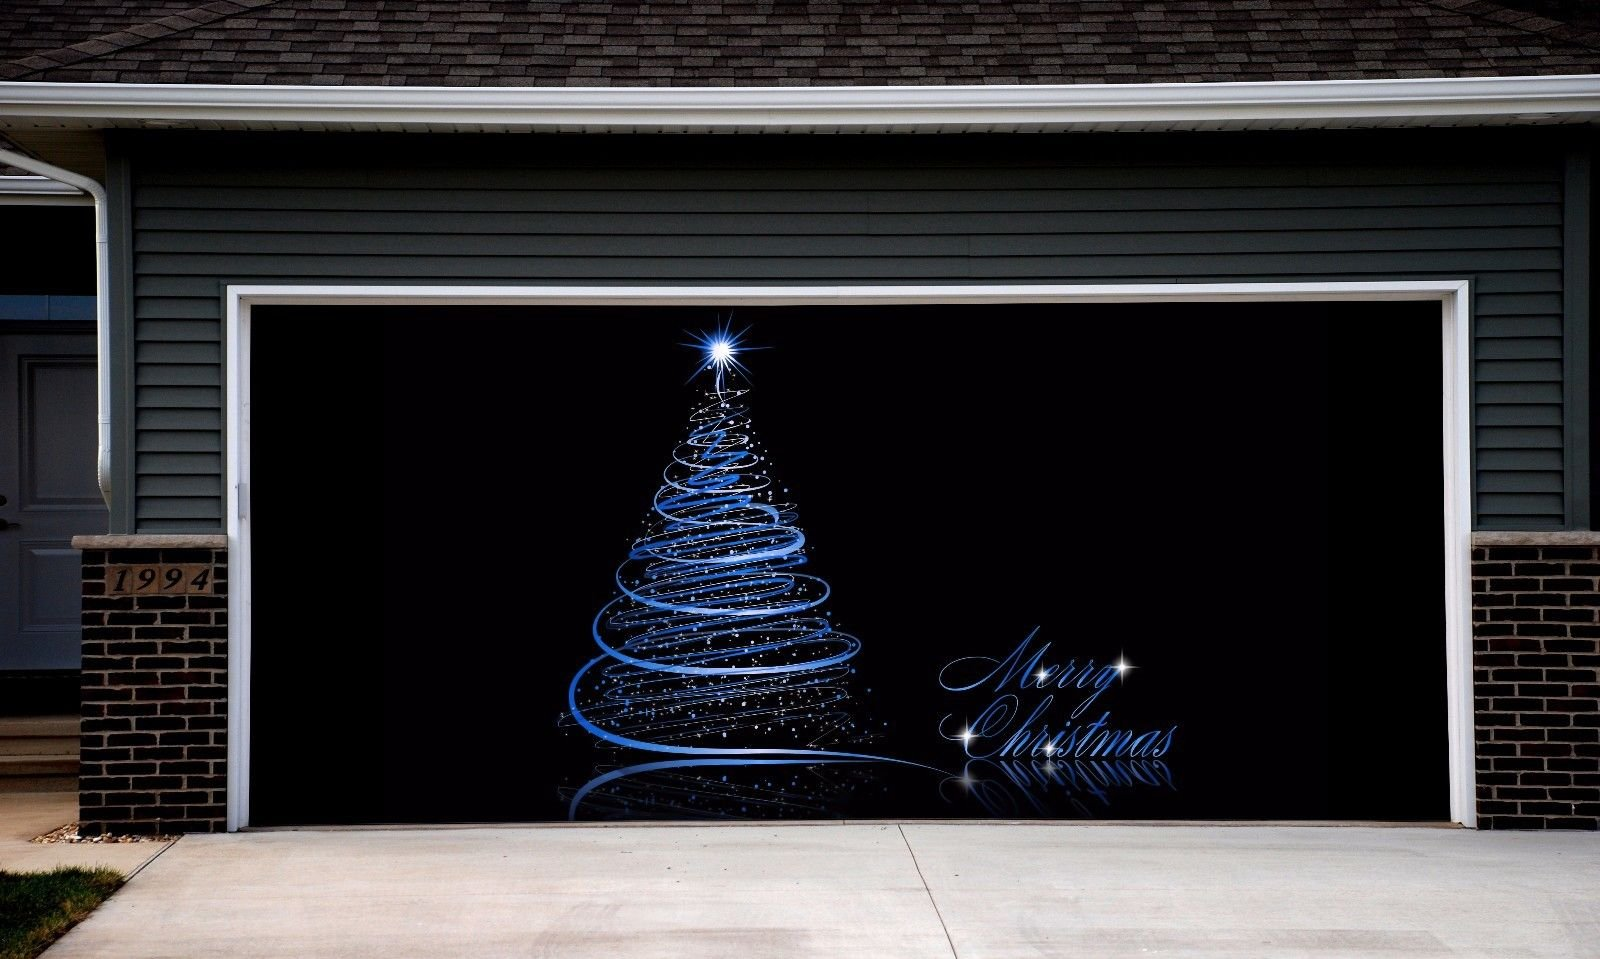 Christmas Tree 3D Garage Door Covers Banners Outdoor Holiday Full Color Merry Christmas Decorations Billboard for 2 Car Garage Door House Art Murals size 82x188 inches DAV55